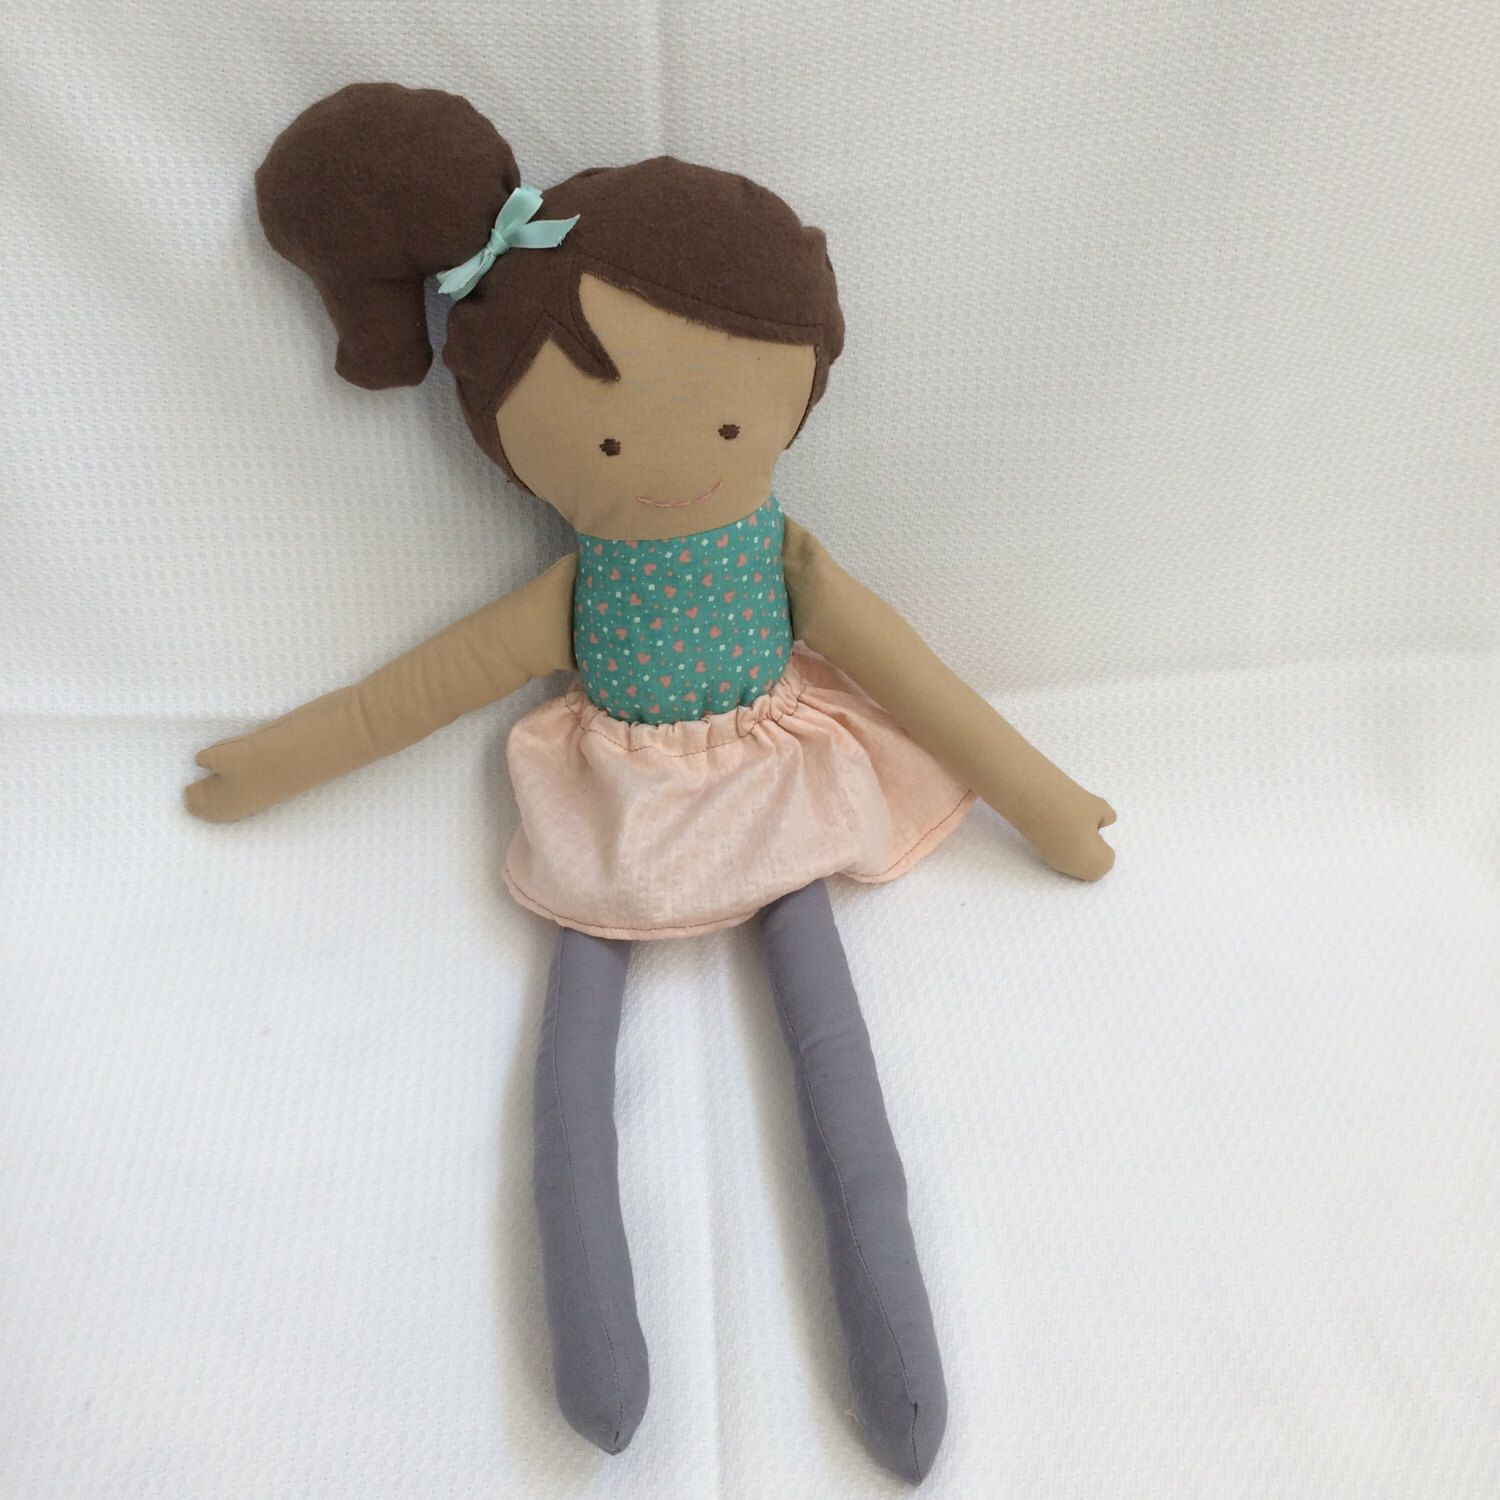 So cute!! My little girl would love this! And so inexpensive for a handmade doll